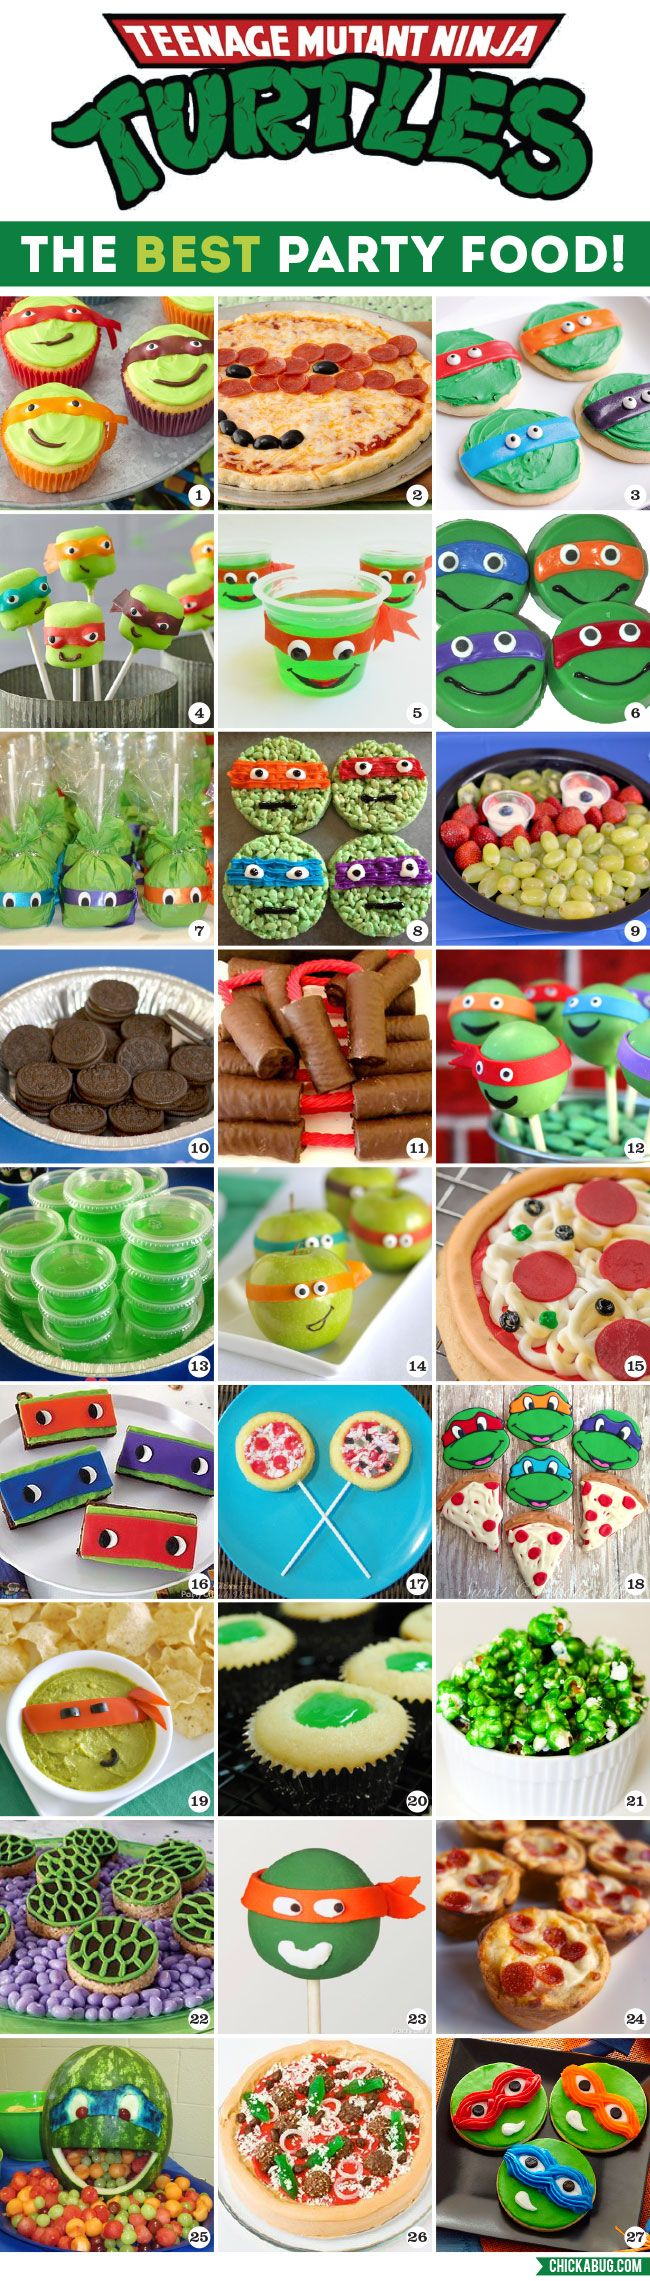 The Best Tmnt Party Food Chickabug Tmnt Party Food Ninja